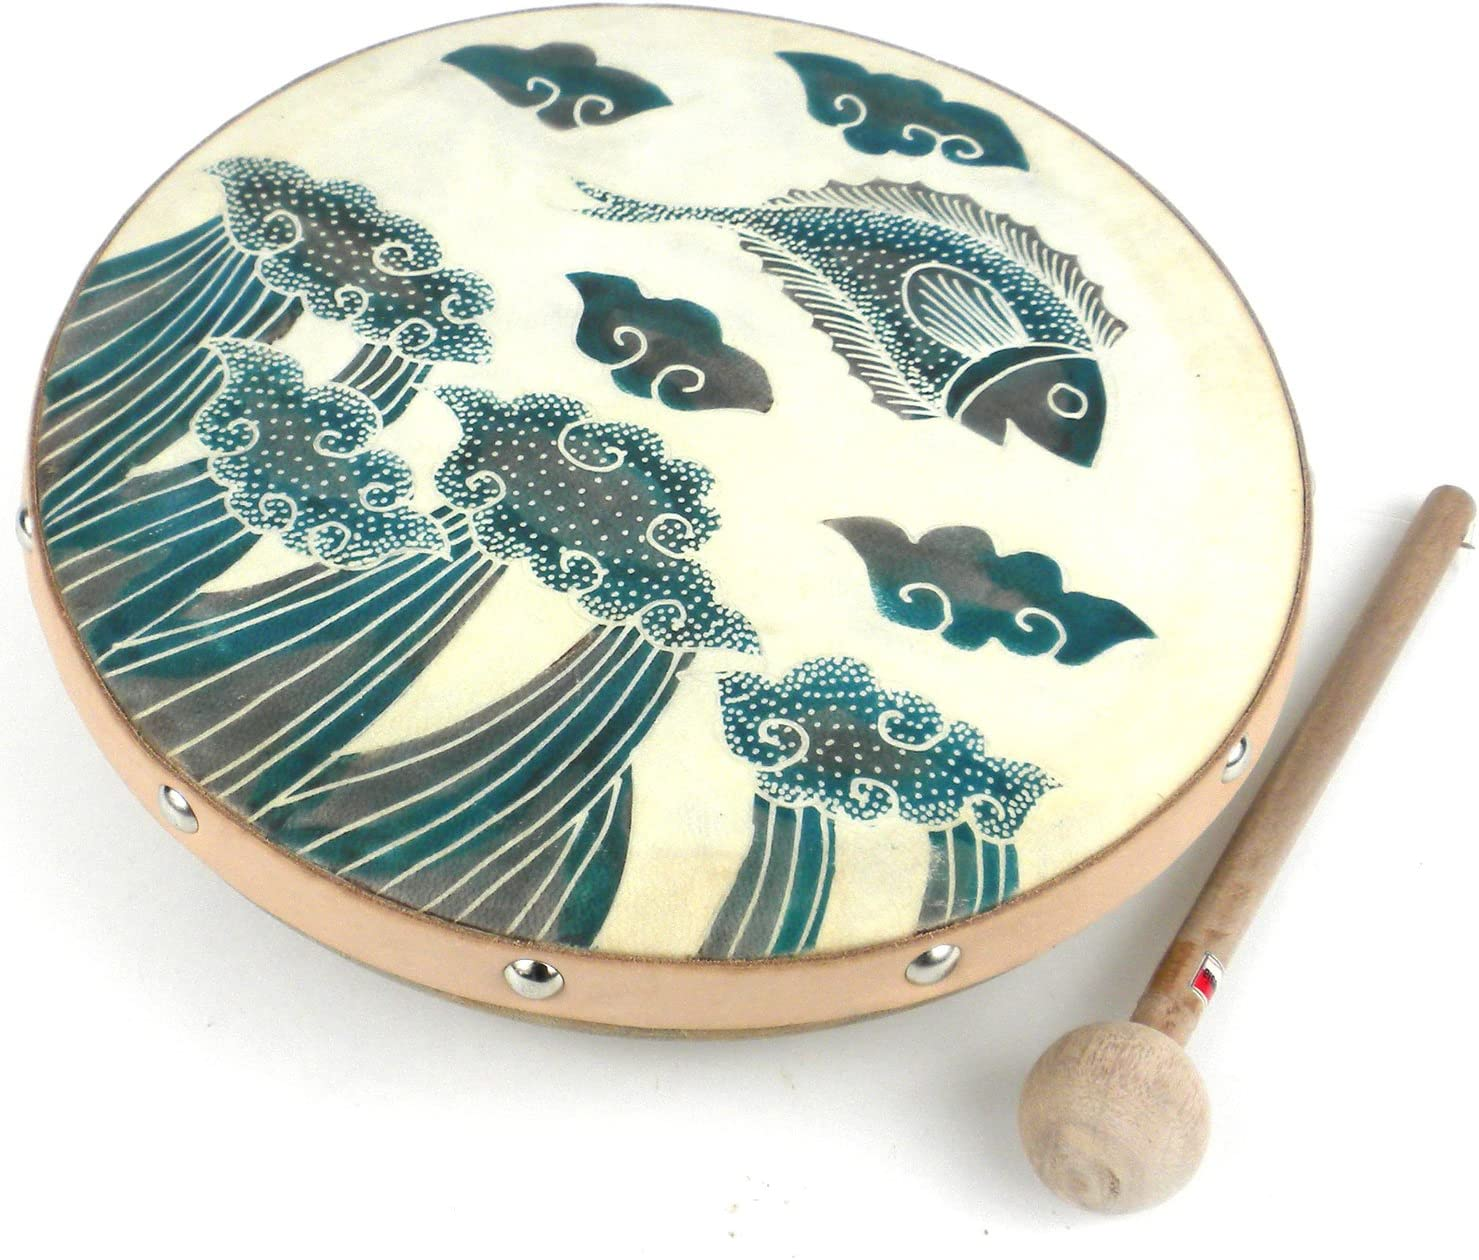 Goat Skin Head Frame Drum Featuring a Jumping Fish Batiked Design